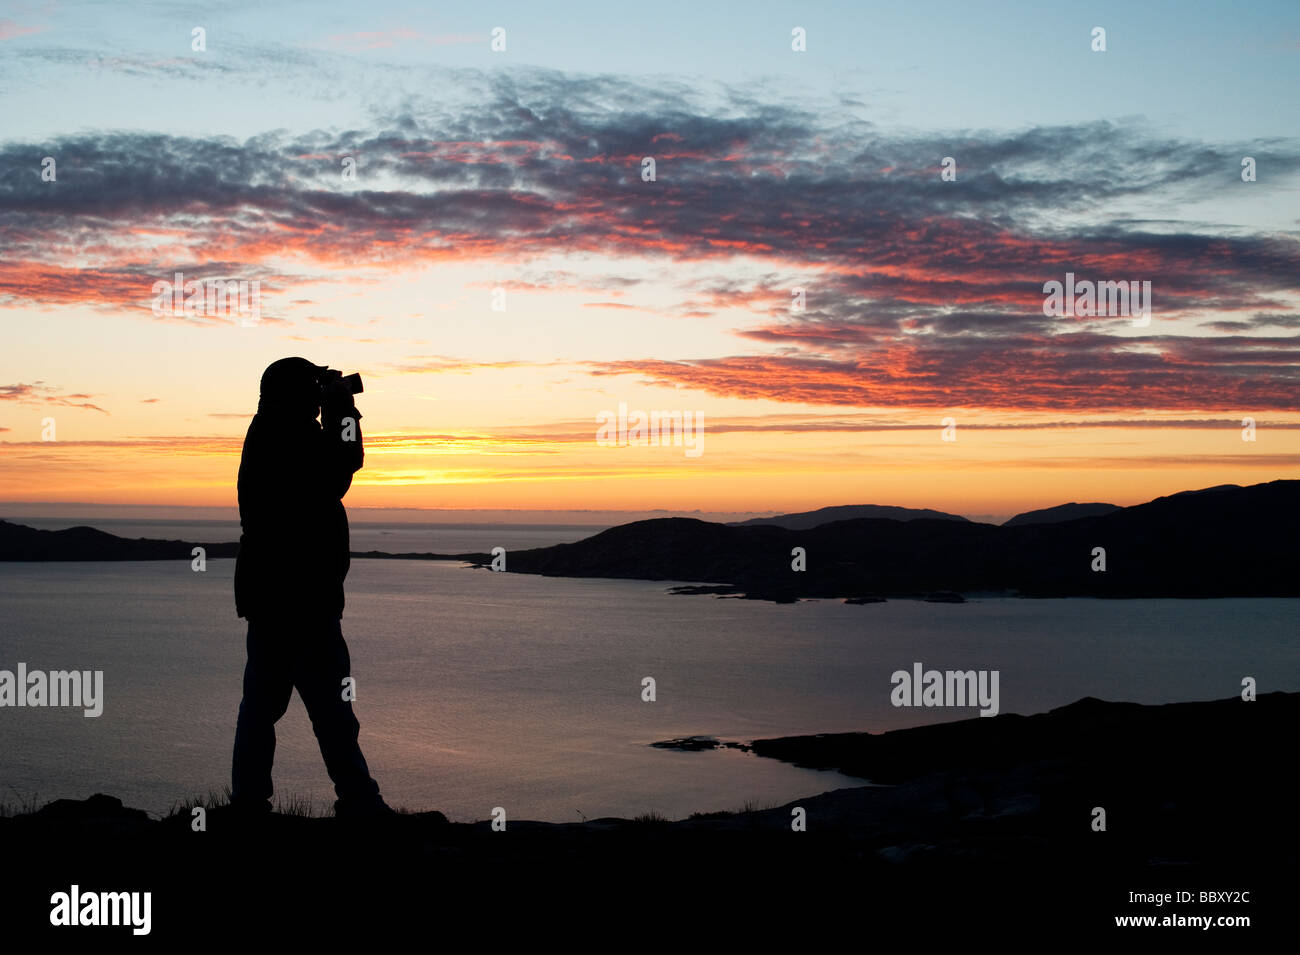 Silhouette of a photographer at sunset looking over Taransay Island, Isle of Harris, Outer Hebrides, Scotland - Stock Image